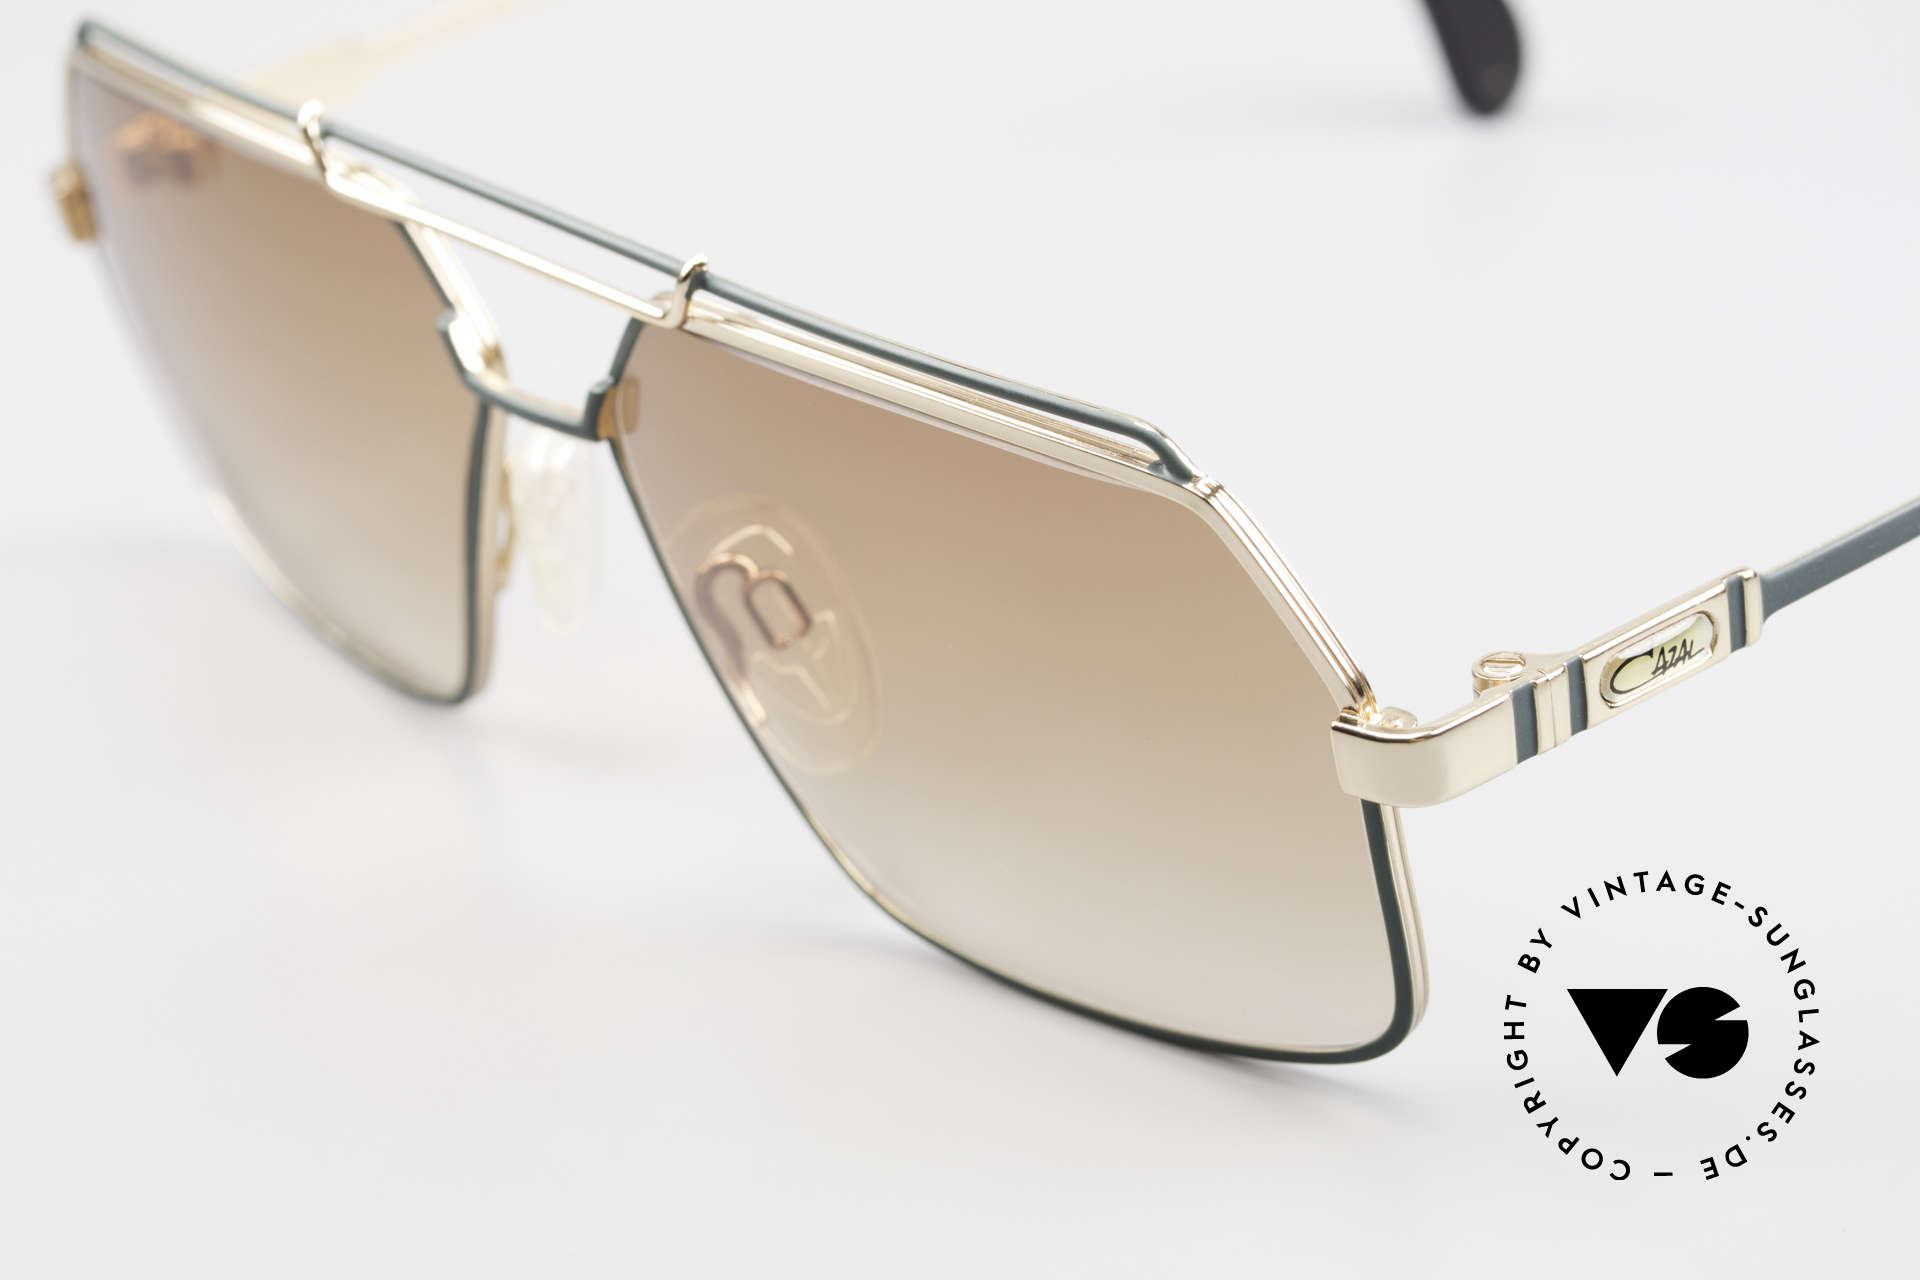 Cazal 734 1980's West Germany Shades, new old stock (like all our vintage Cazal eyewear), Made for Men